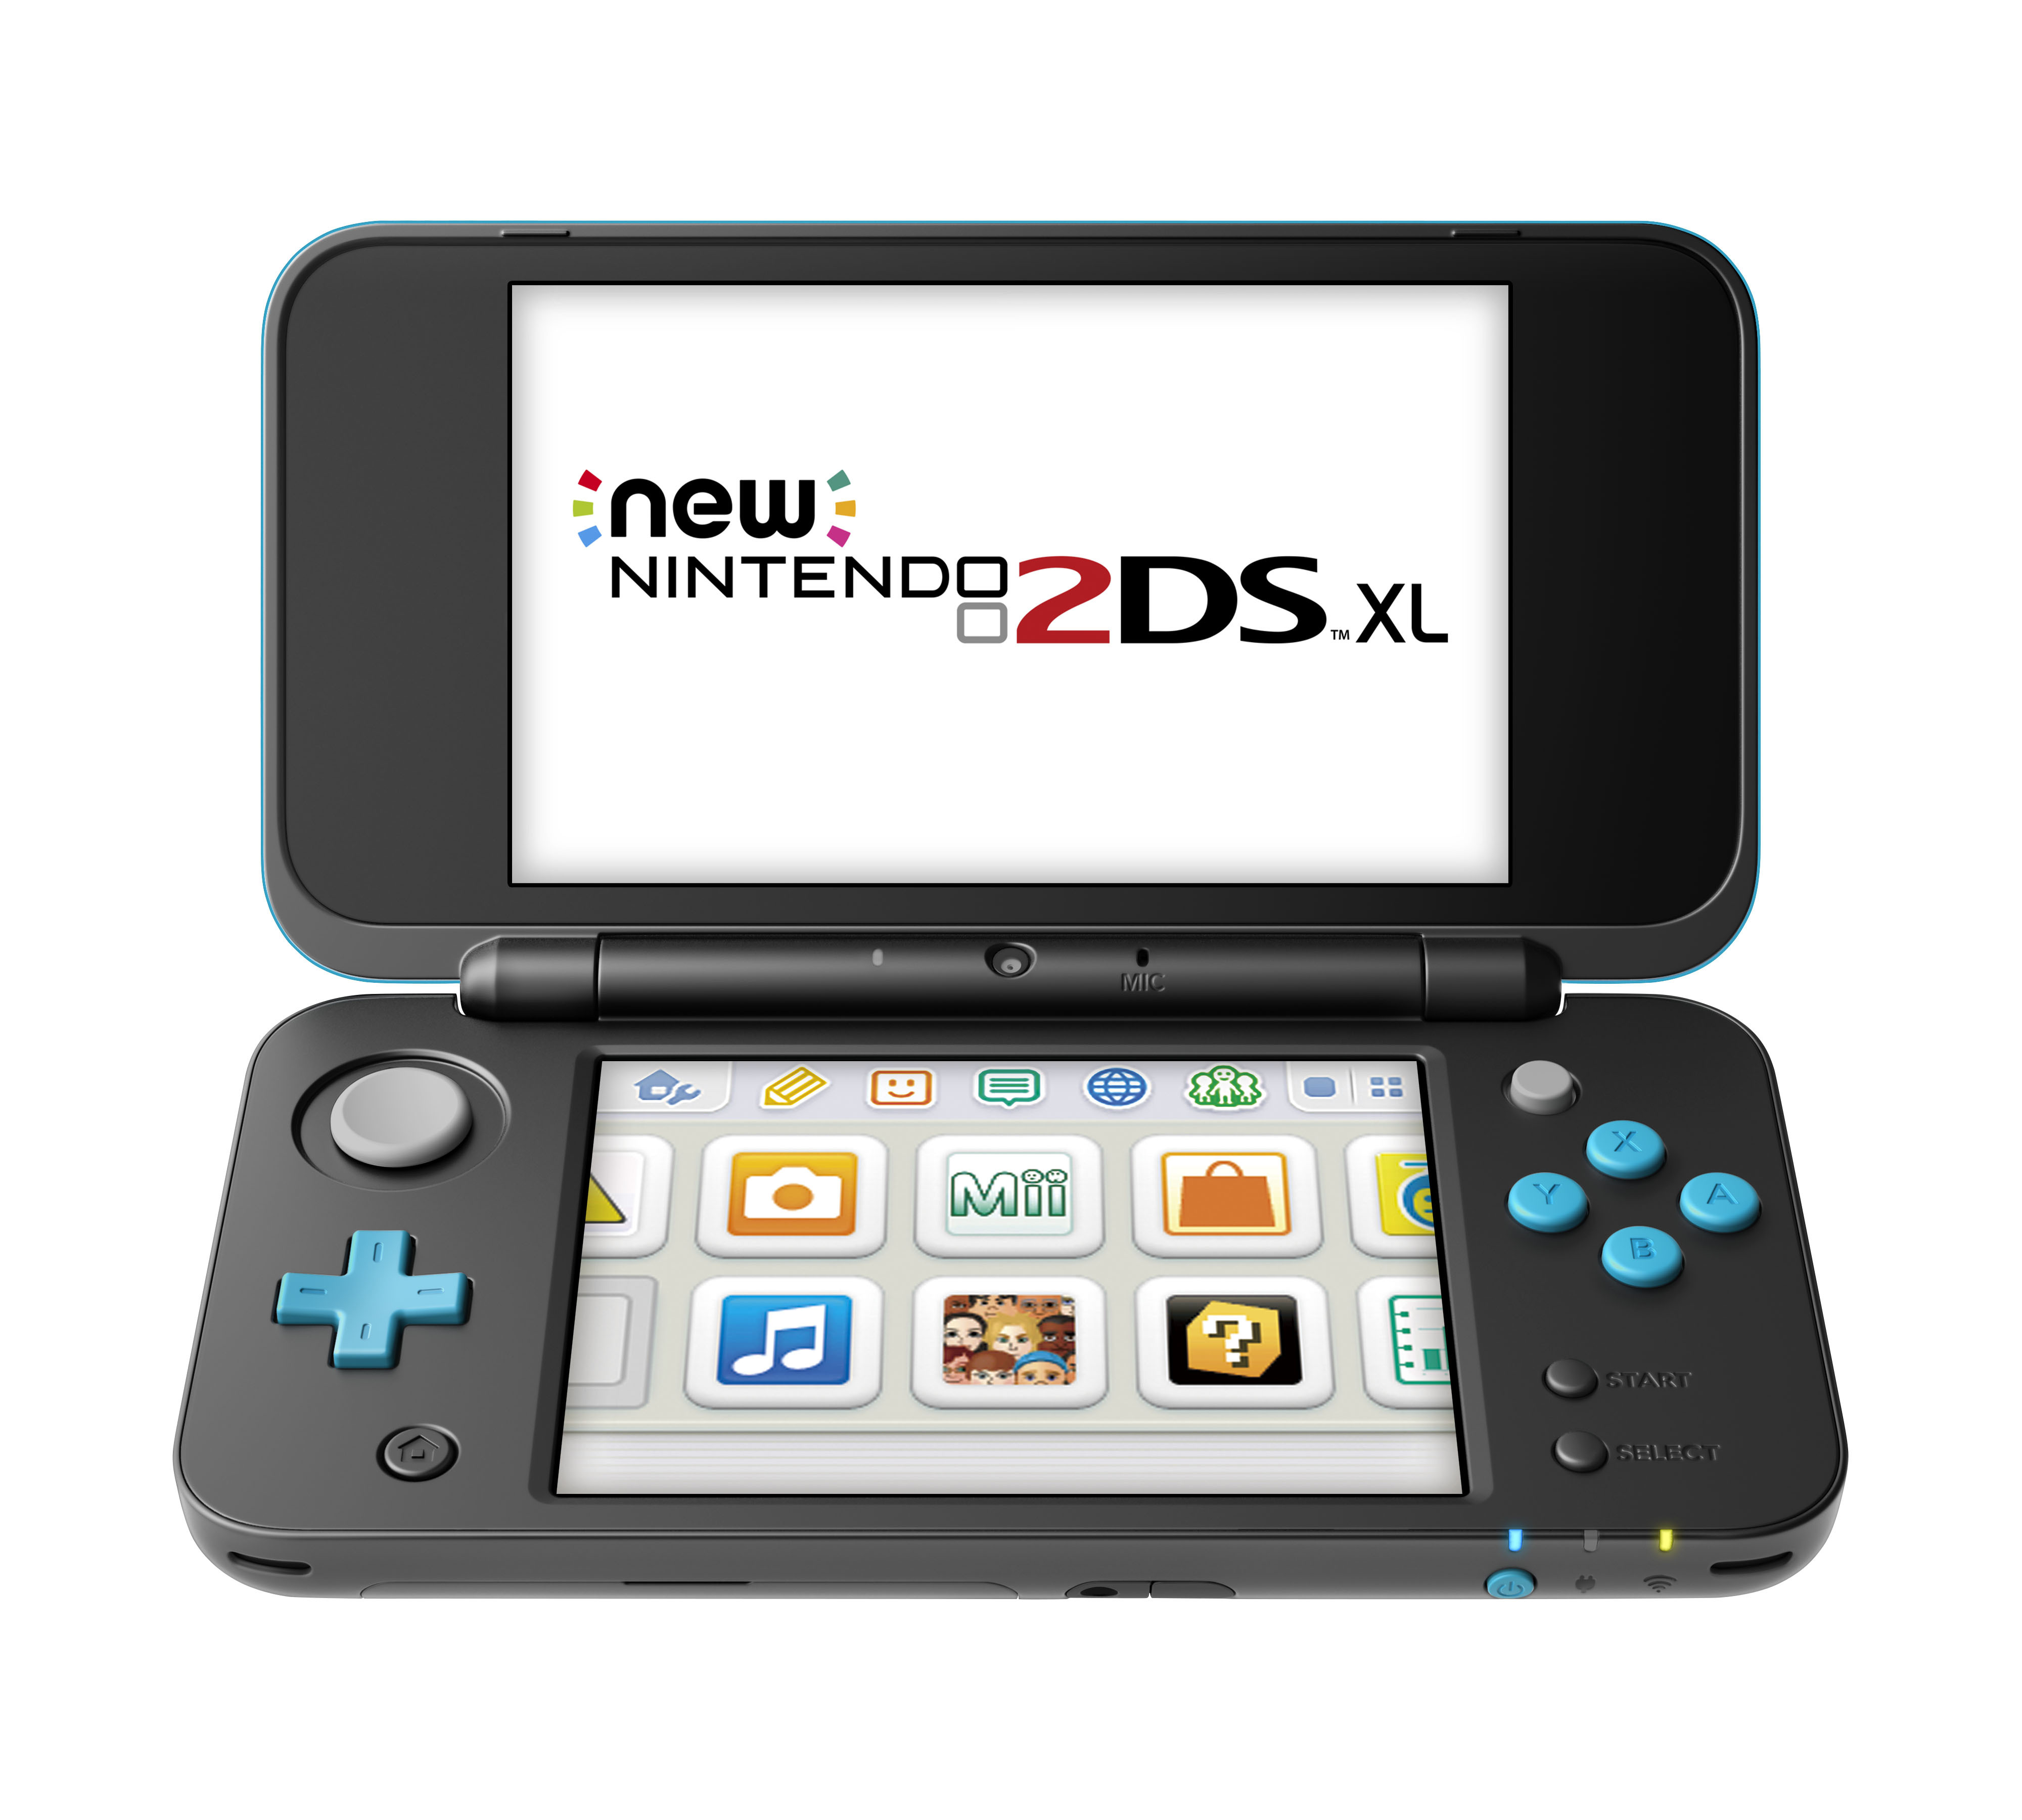 New Nintendo 2DS XL will launch on the same day as two big new games for the Nintendo 3DS family of systems: Hey! PIKMIN and Miitopia. (Photo: Business Wire)